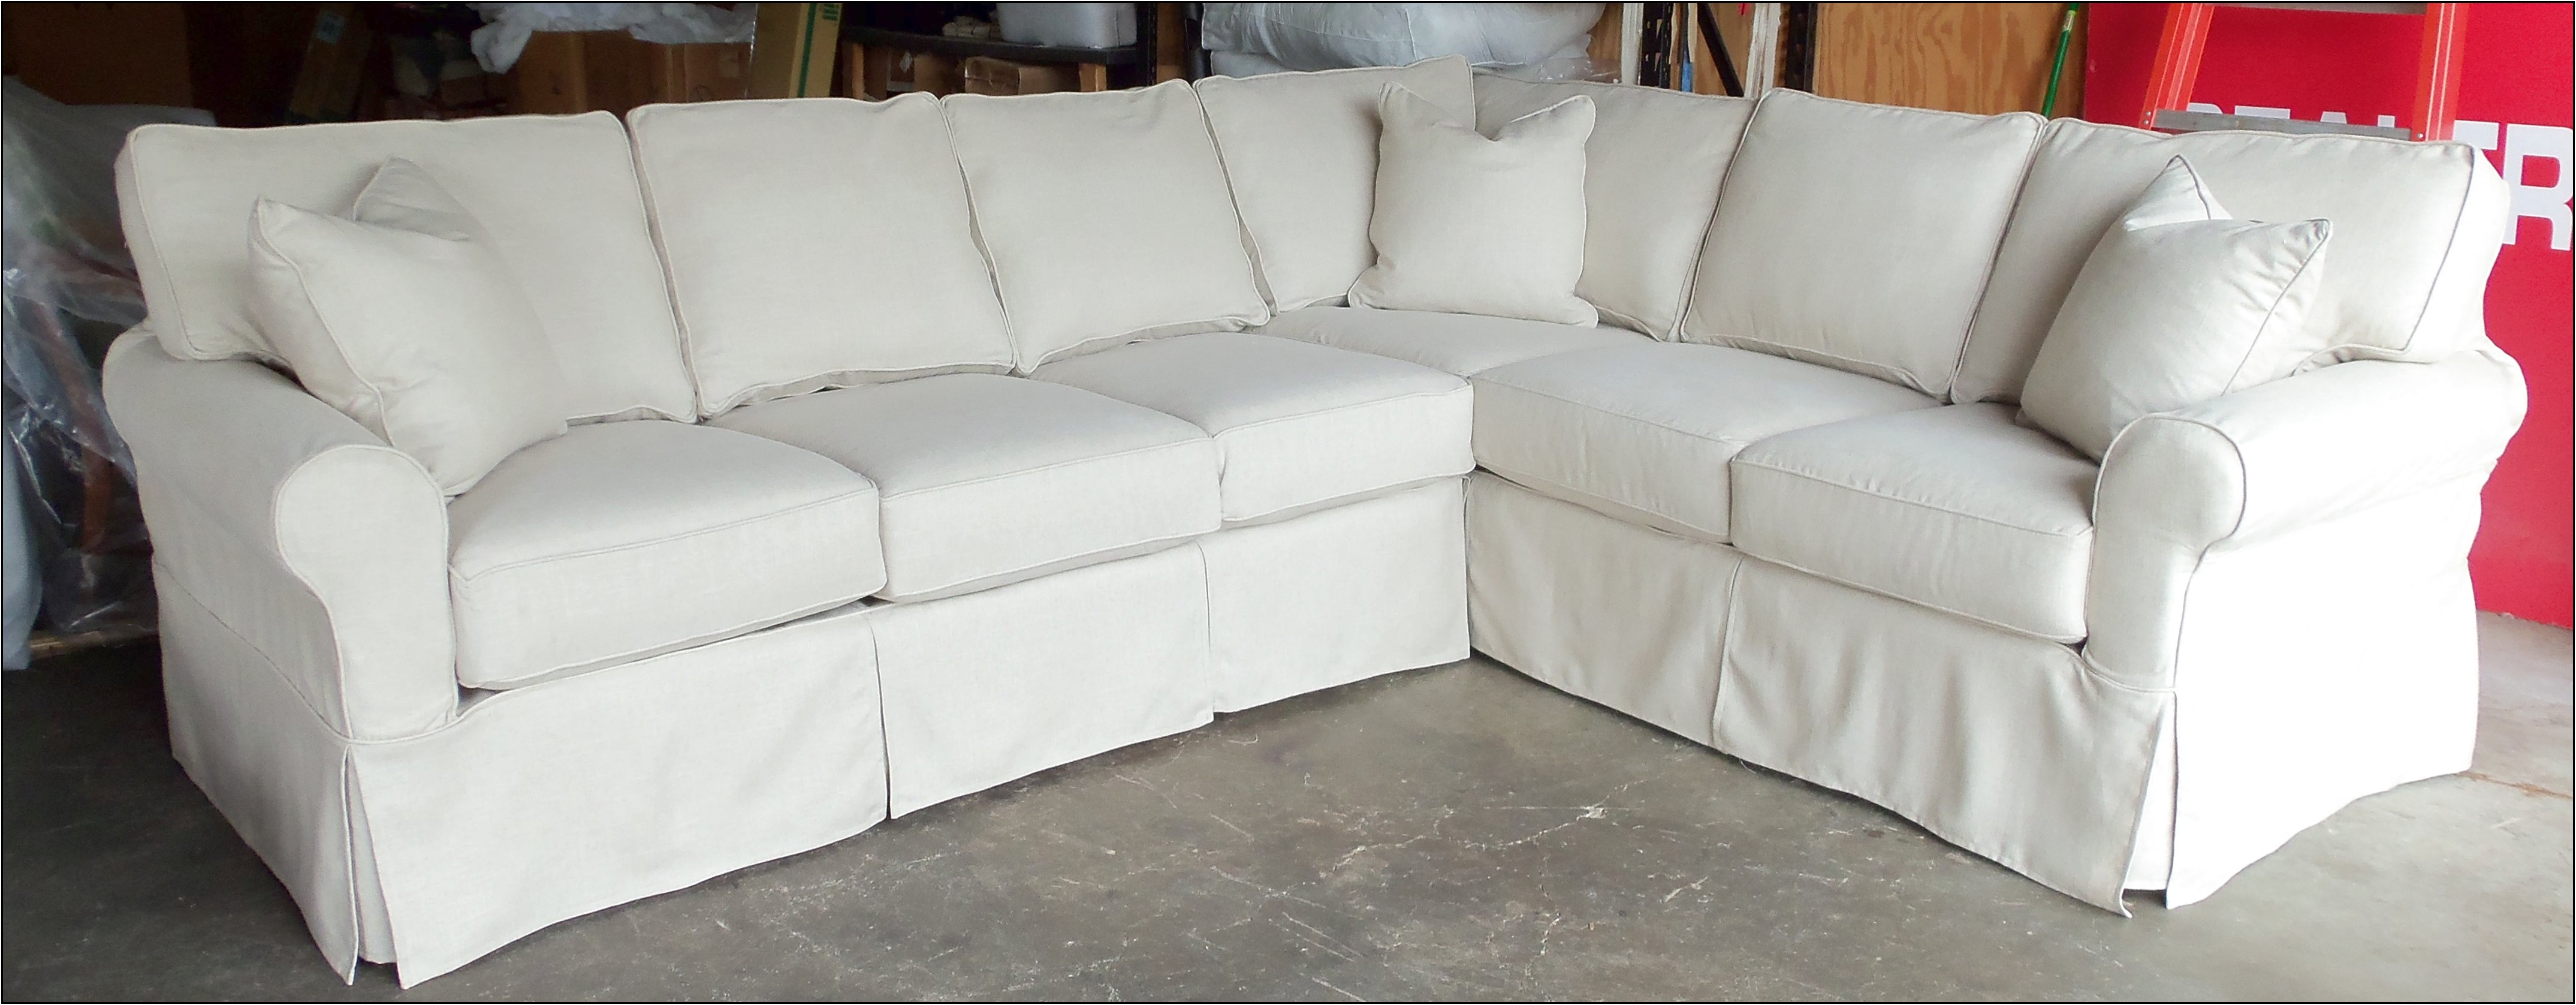 cheap sectional sofas in white for living room furniture ideas